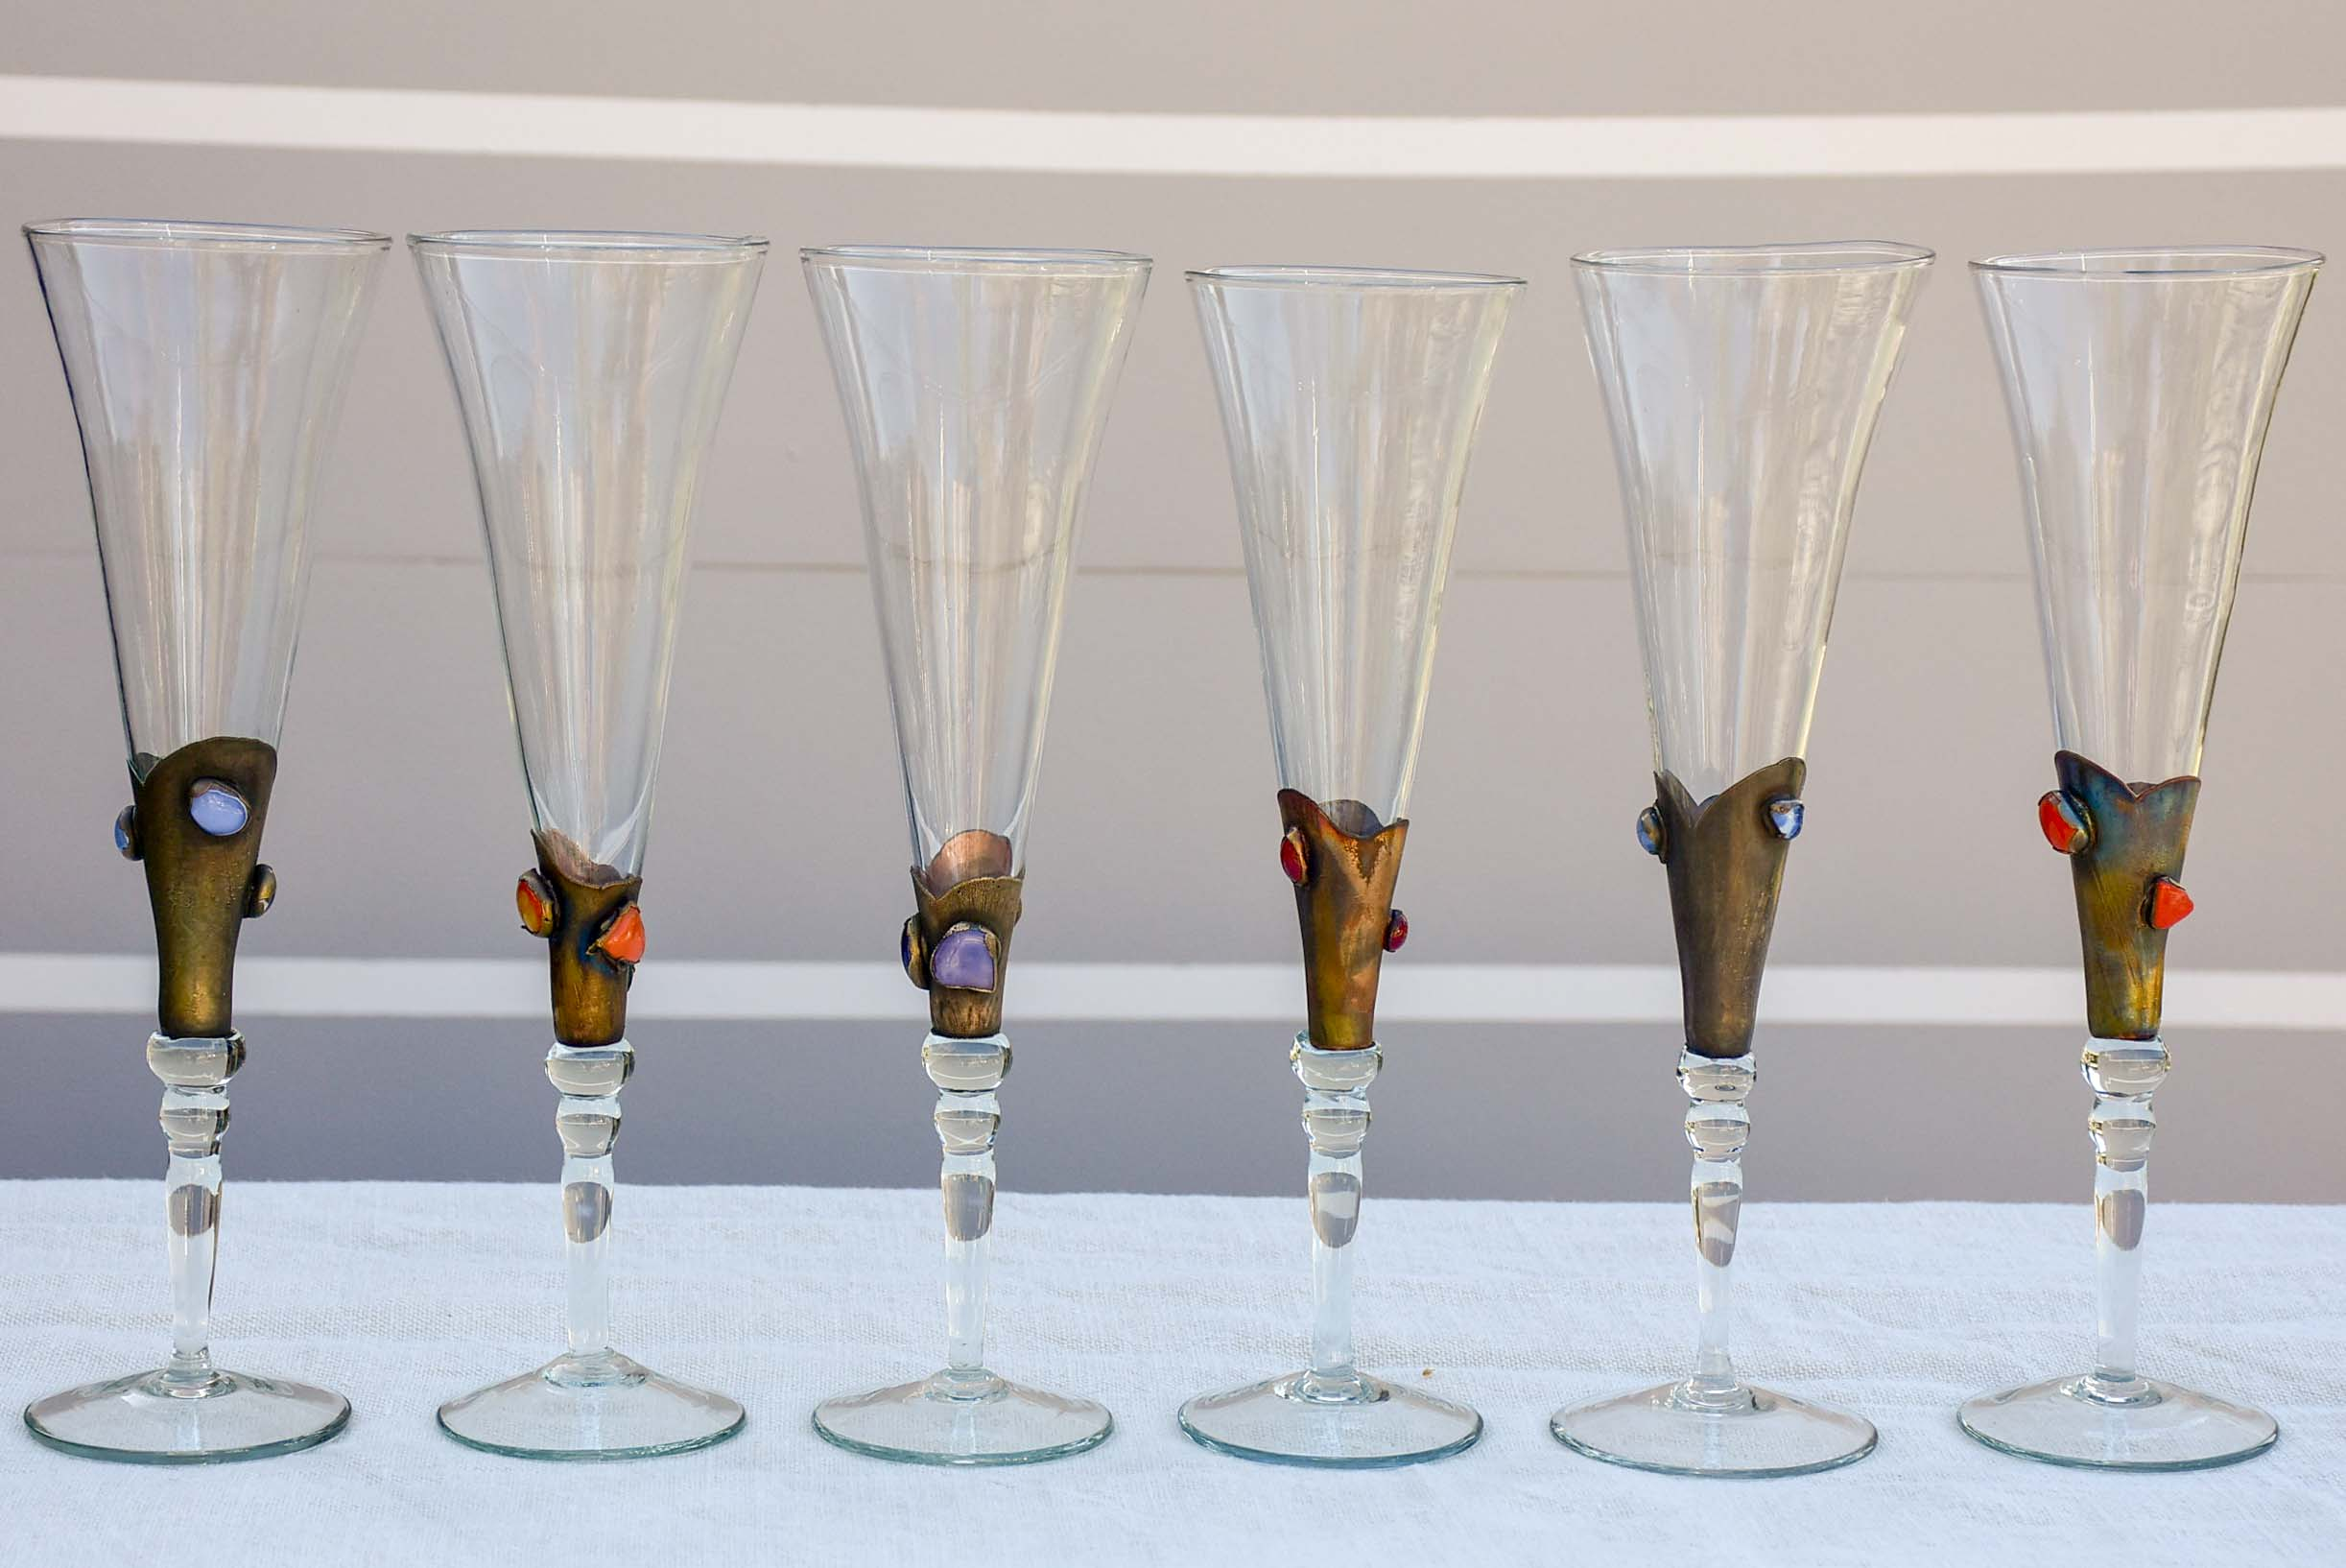 Set of twelve 1950's Murano glass champagne glasses with gemstones